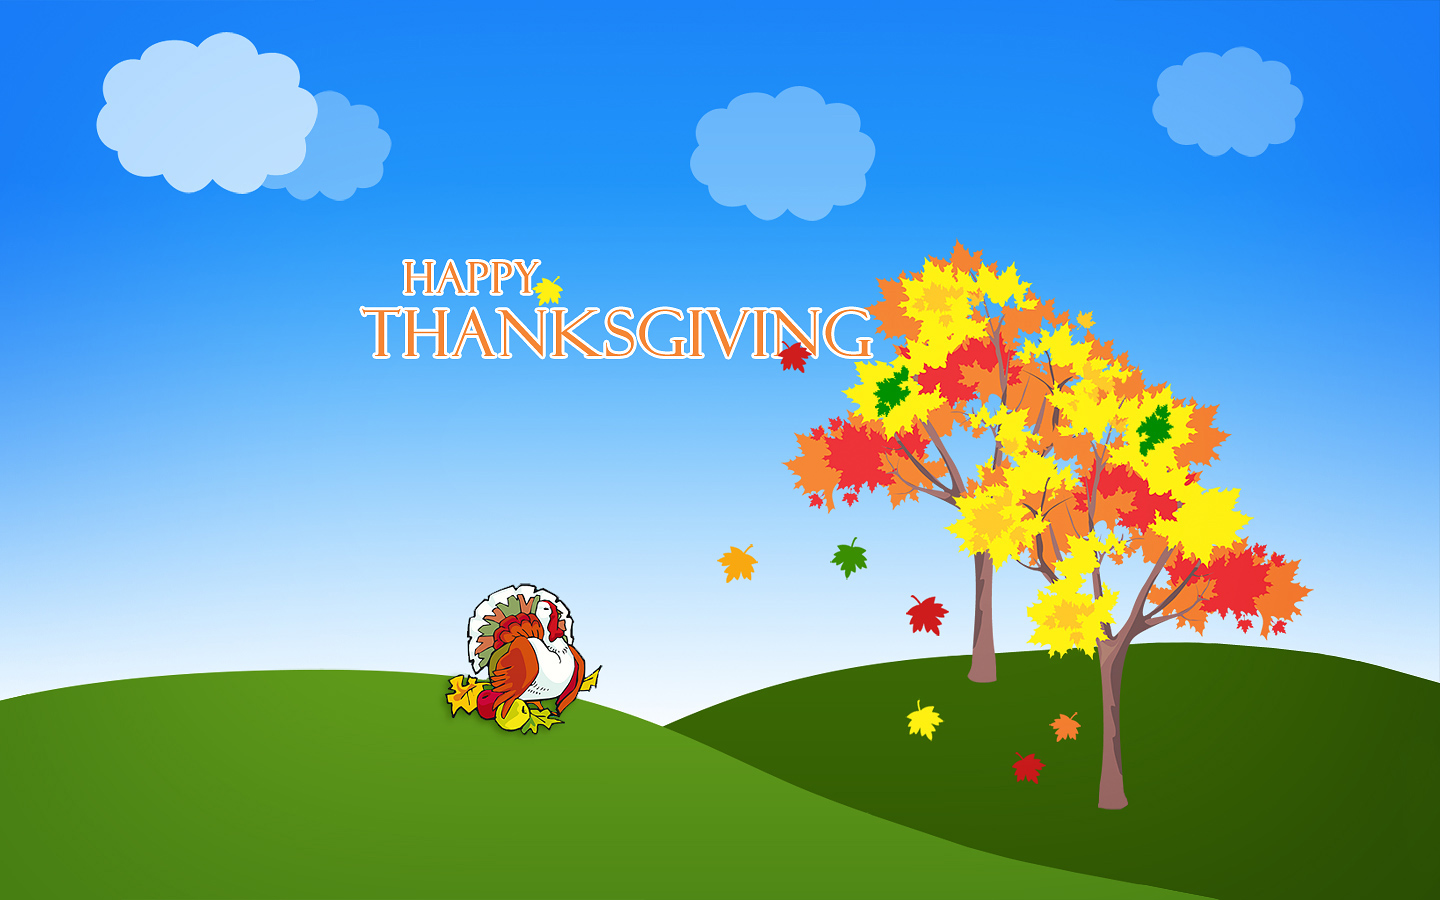 Download The Happy Turkey Day Thanksgiving Wallpaper For Free | Apps ...